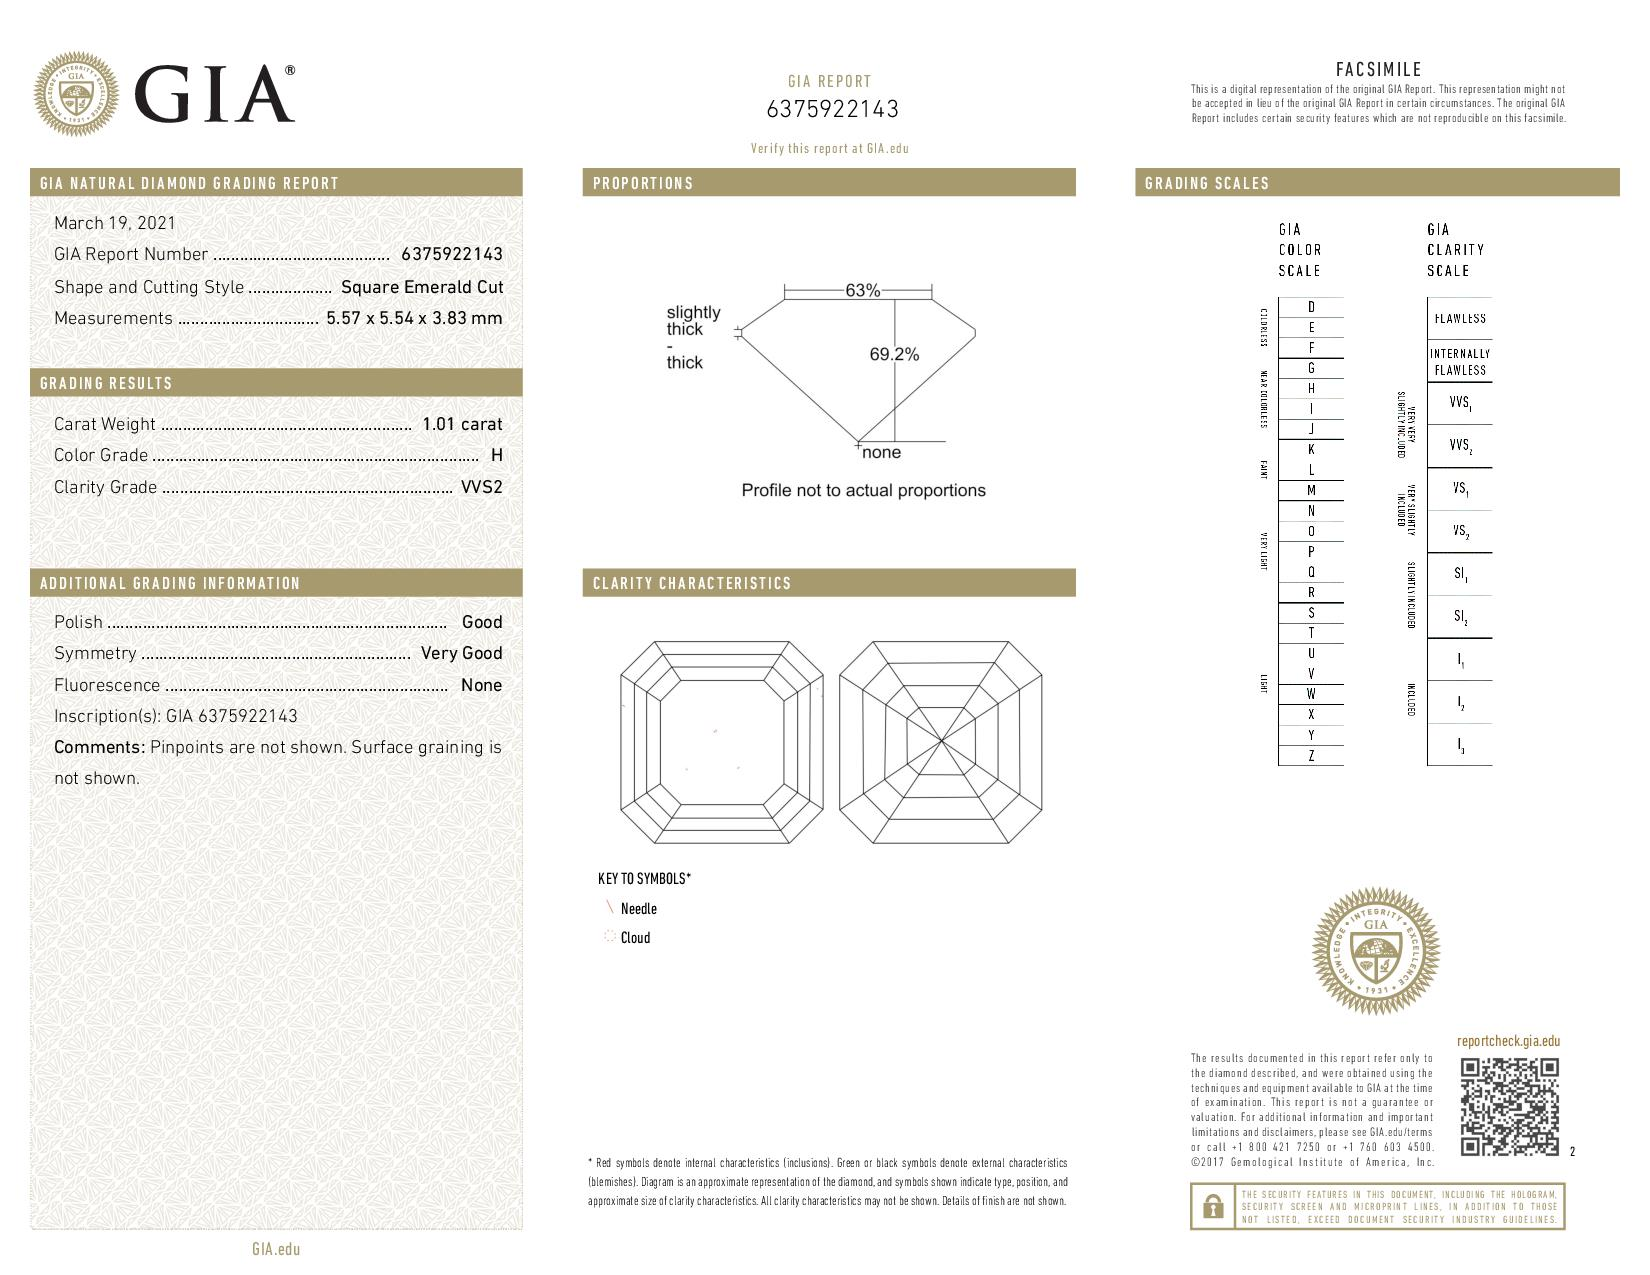 This is a 1.01 carat asscher shape, H color, VVS2 clarity natural diamond accompanied by a GIA grading report.